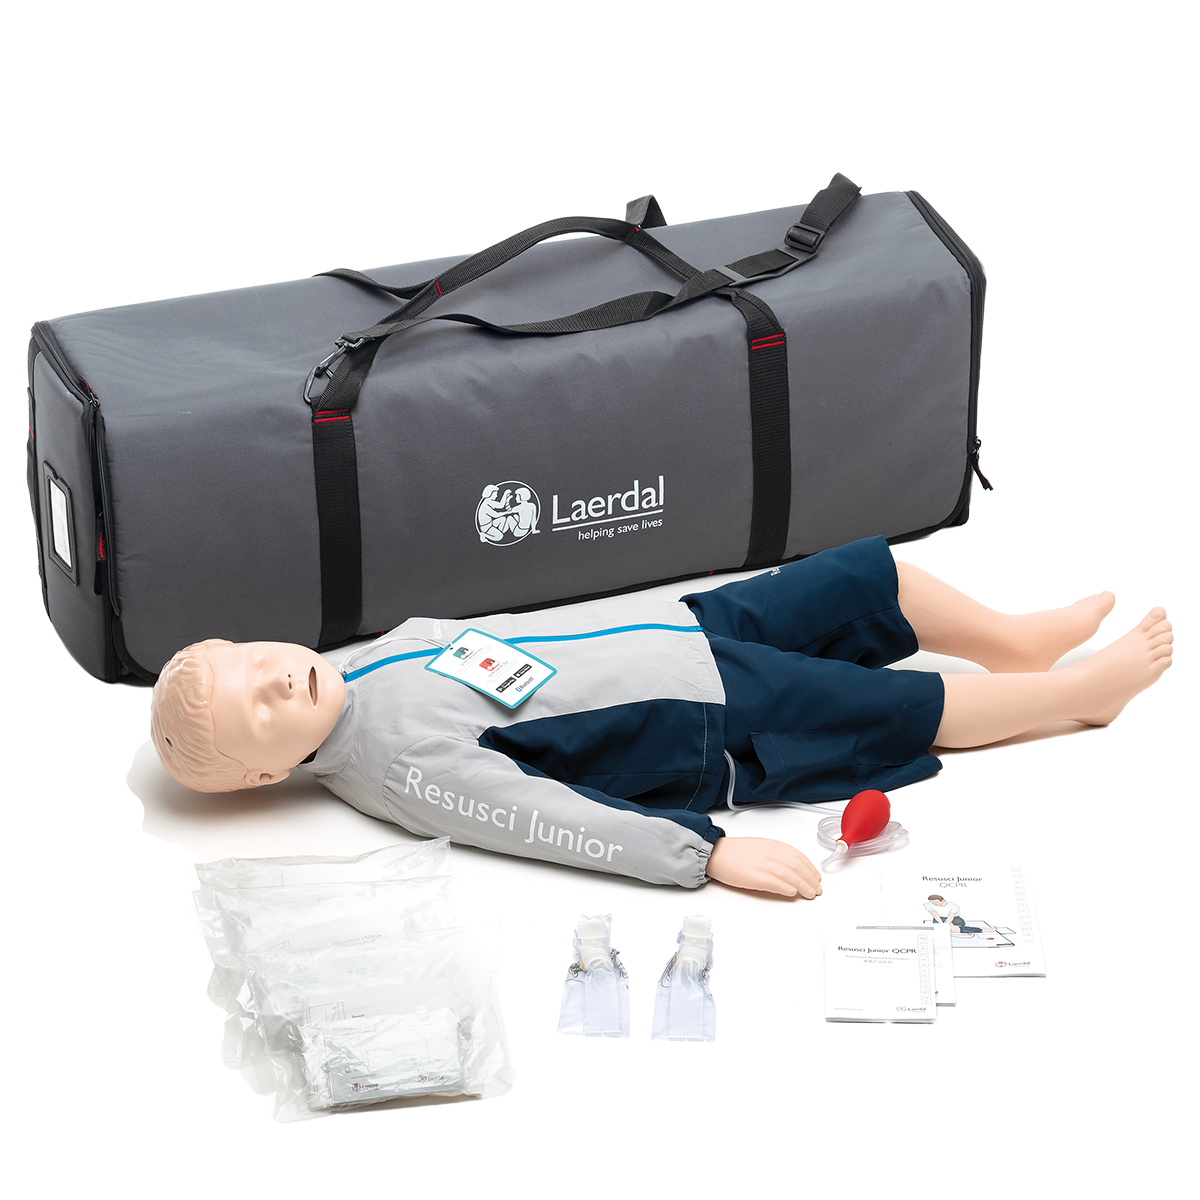 Laerdal Resusci® Junior QCPR Training Manikin